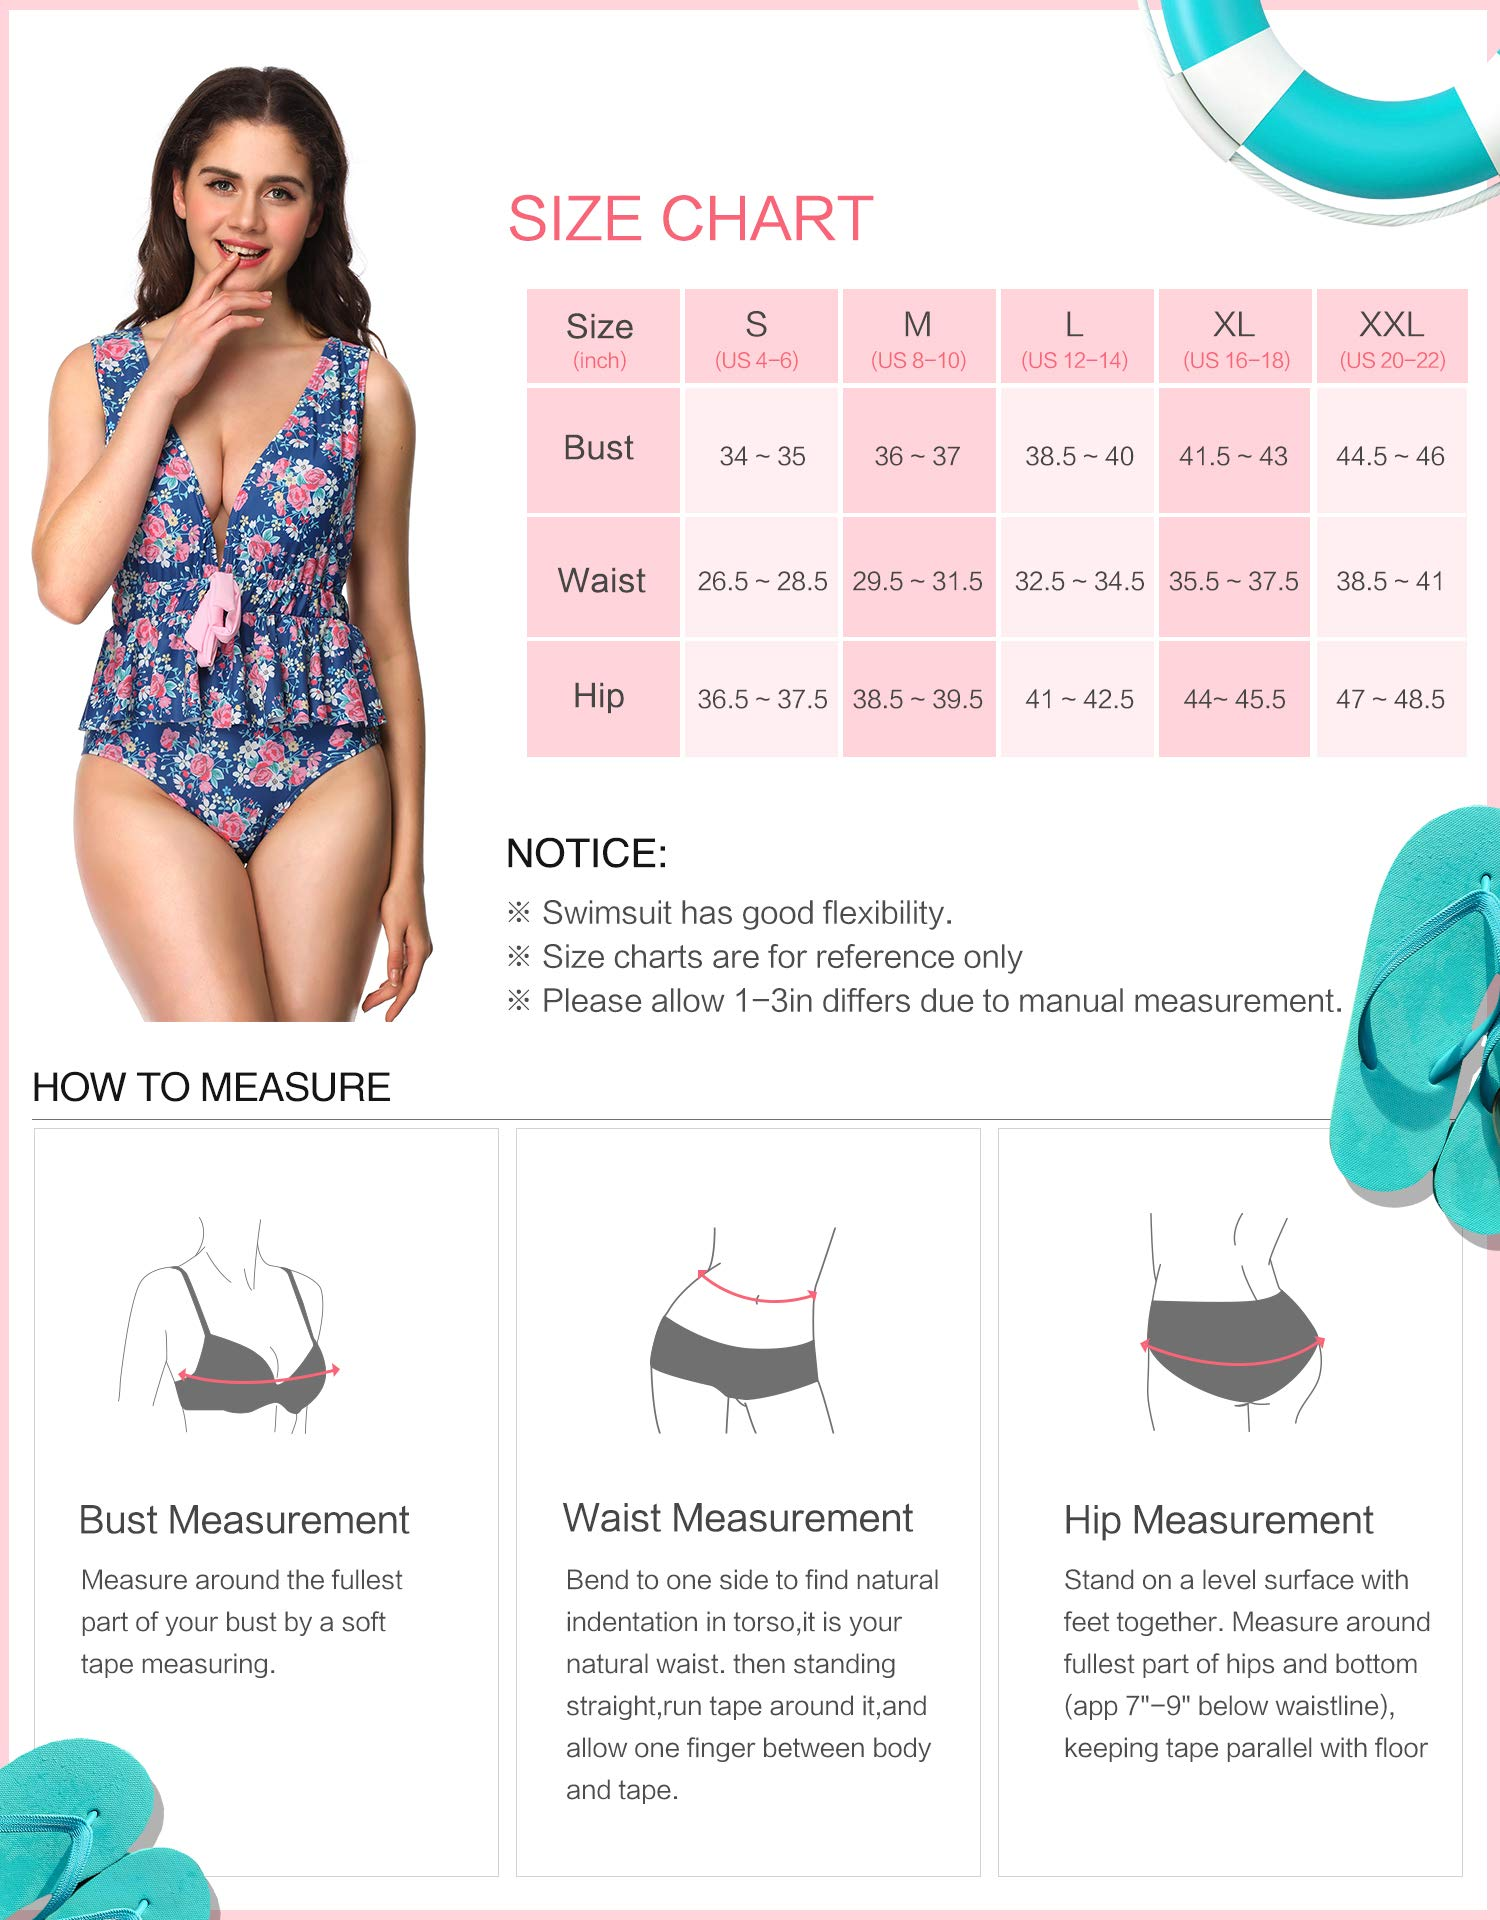 Verano Playa Women Deep Plunge High Waisted One Piece Swimsuit Ruffle Swimwear with Bow Tie Front Backless Bathing Suit